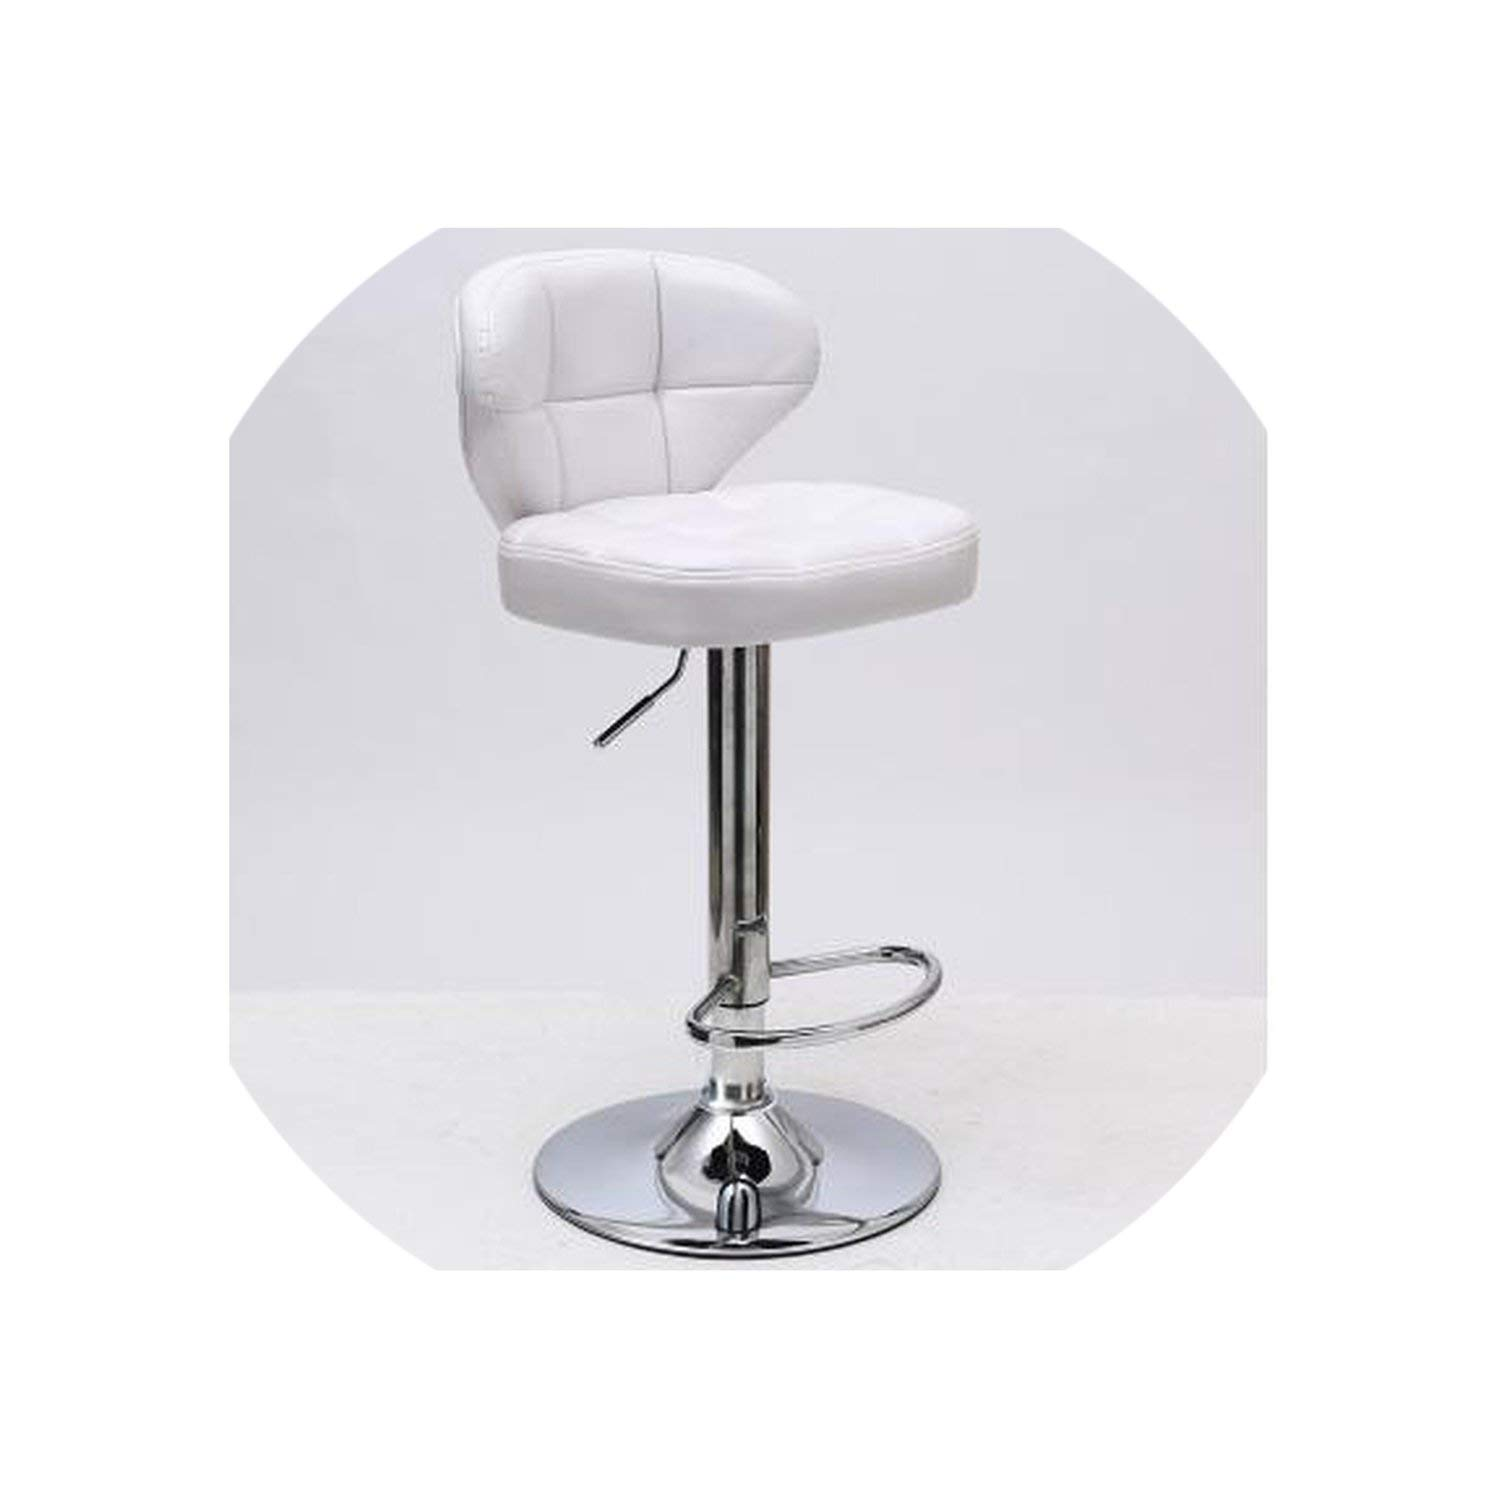 Style 2 tthappy76 European Bar Stools Bar Chair High Table and Chair Bar Stool Lifting redating Home Back Computer Chair,Style 11